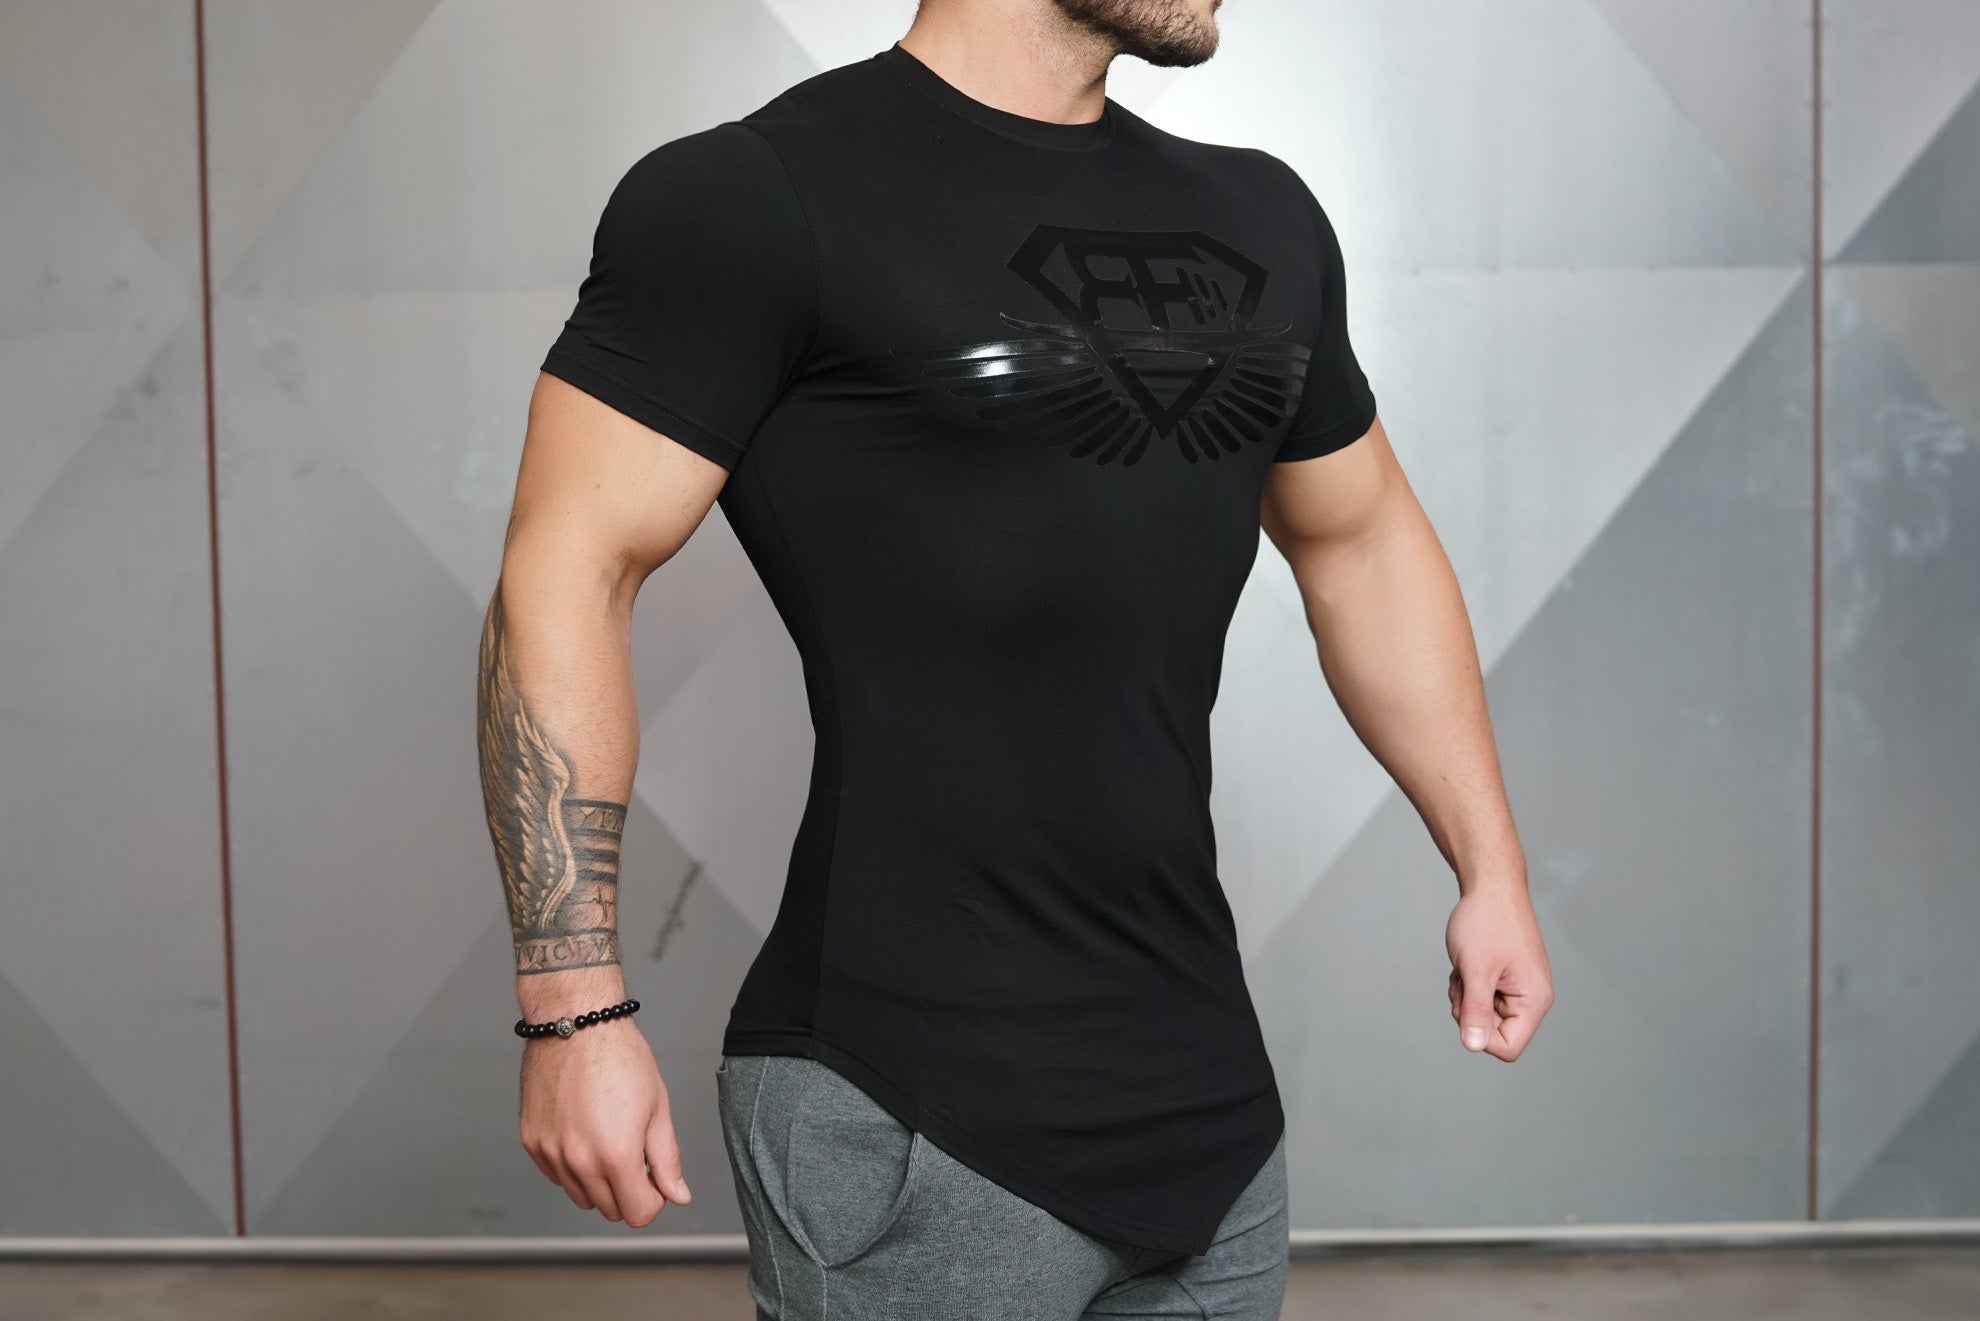 Engineered-Life Prometheus T-Shirt 3.0 Black on Black